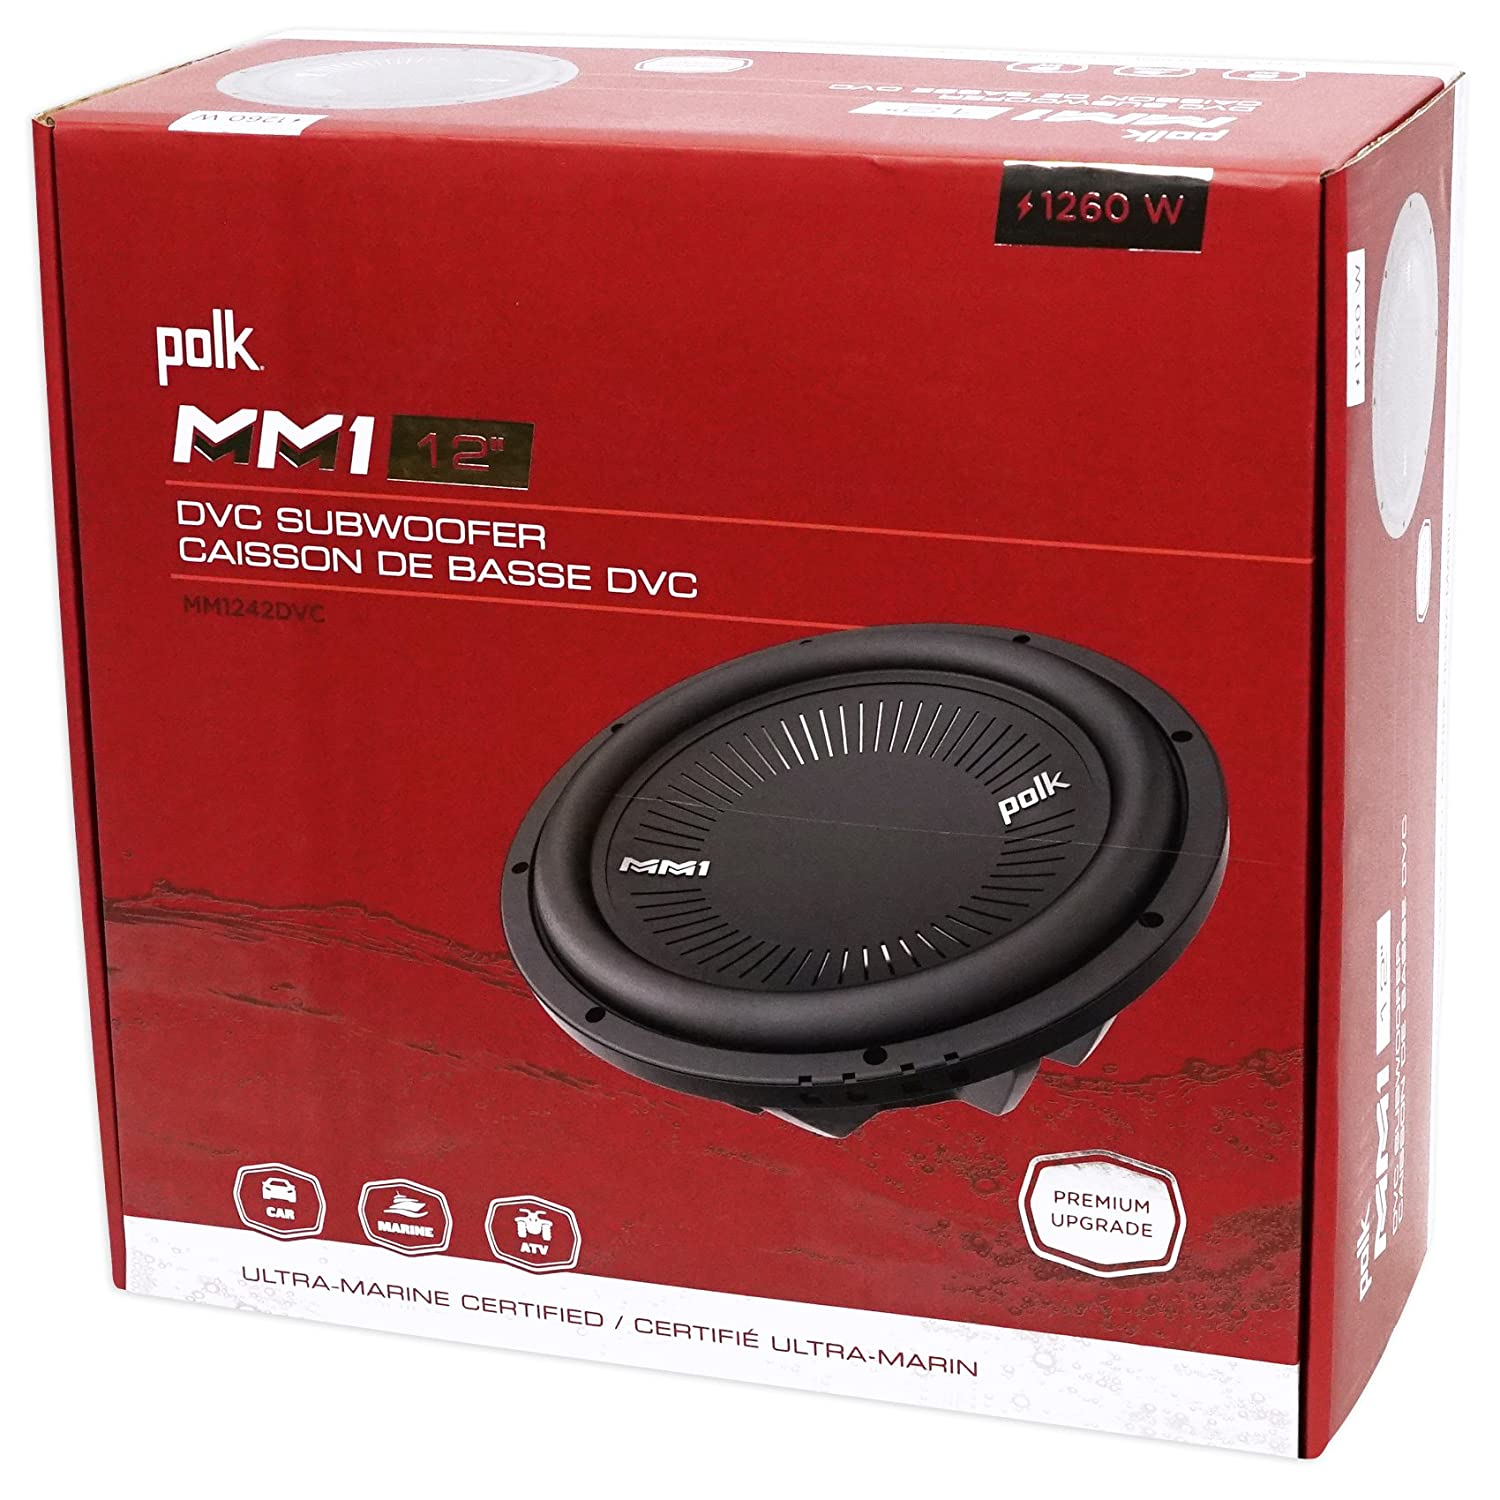 Polk Audio Mm 1242 Dvc 12 1260w Car Subwoofer Sub How To Wire 4 Ohm Dual Voice Coil Subs Kicker L7 Wiring Diagram Mono Amplifier Amp Kit Electronics